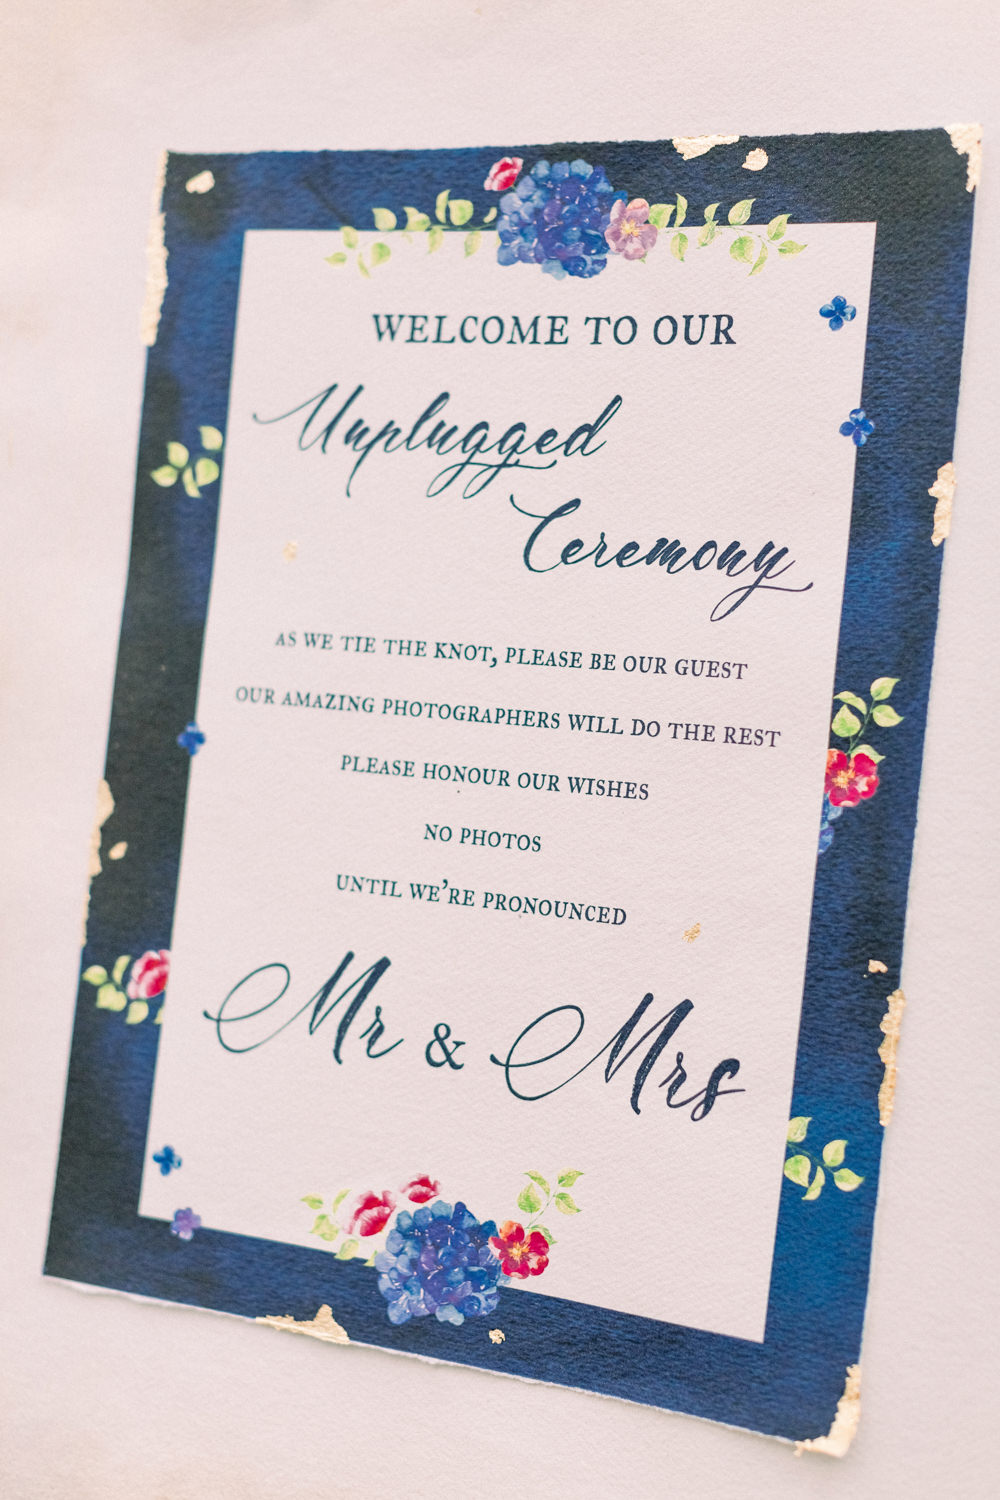 Sign Signs Signage Unplugged Ceremony Easel Tortworth Court Wedding Sanshine Photography